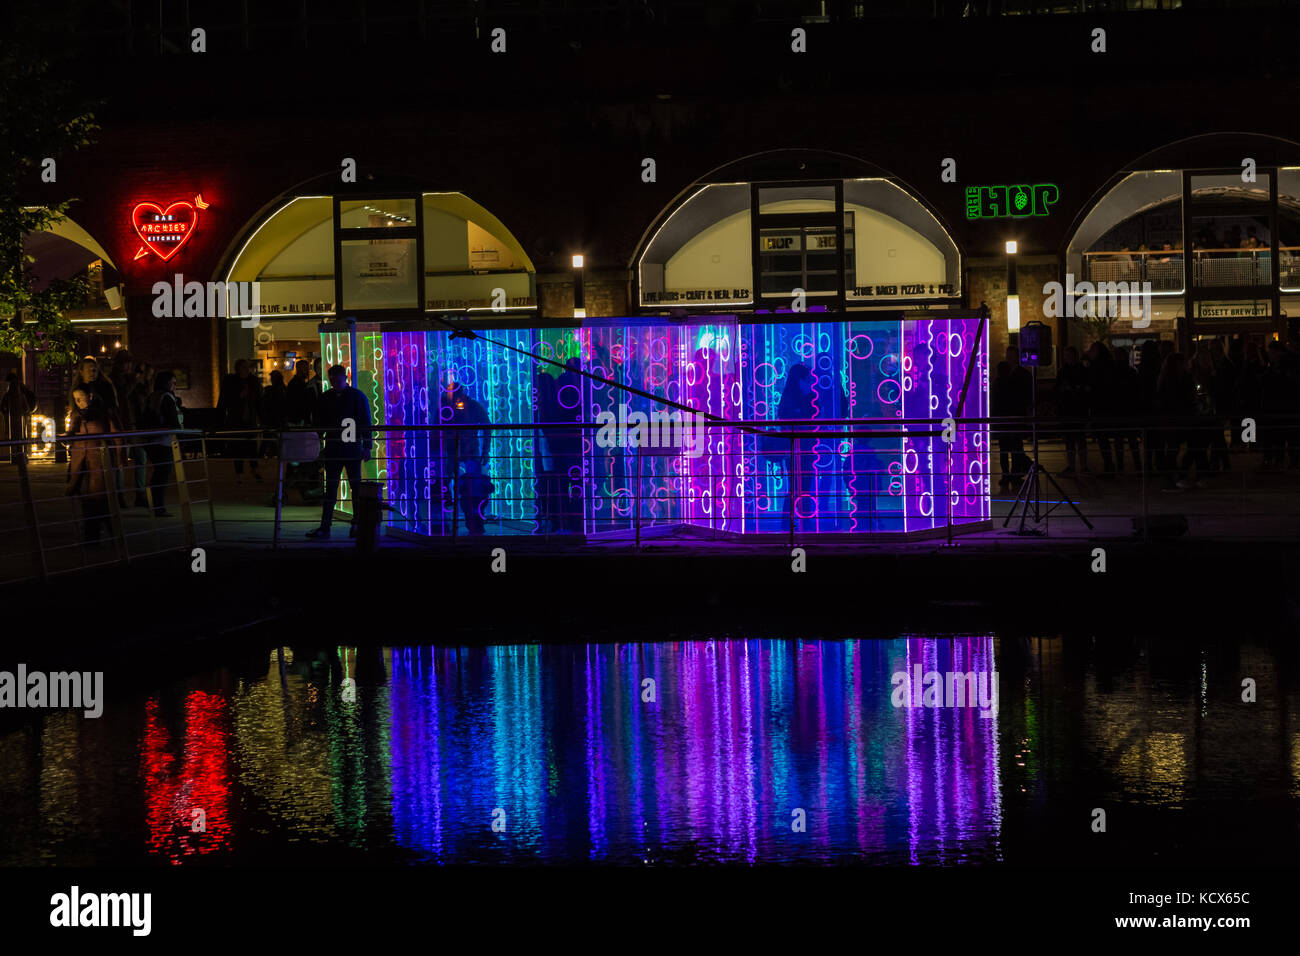 6th Oct 2017, Leeds Night Light, a magical celebration of light and colour, this the 13th year of Light Night Leeds. - Stock Image